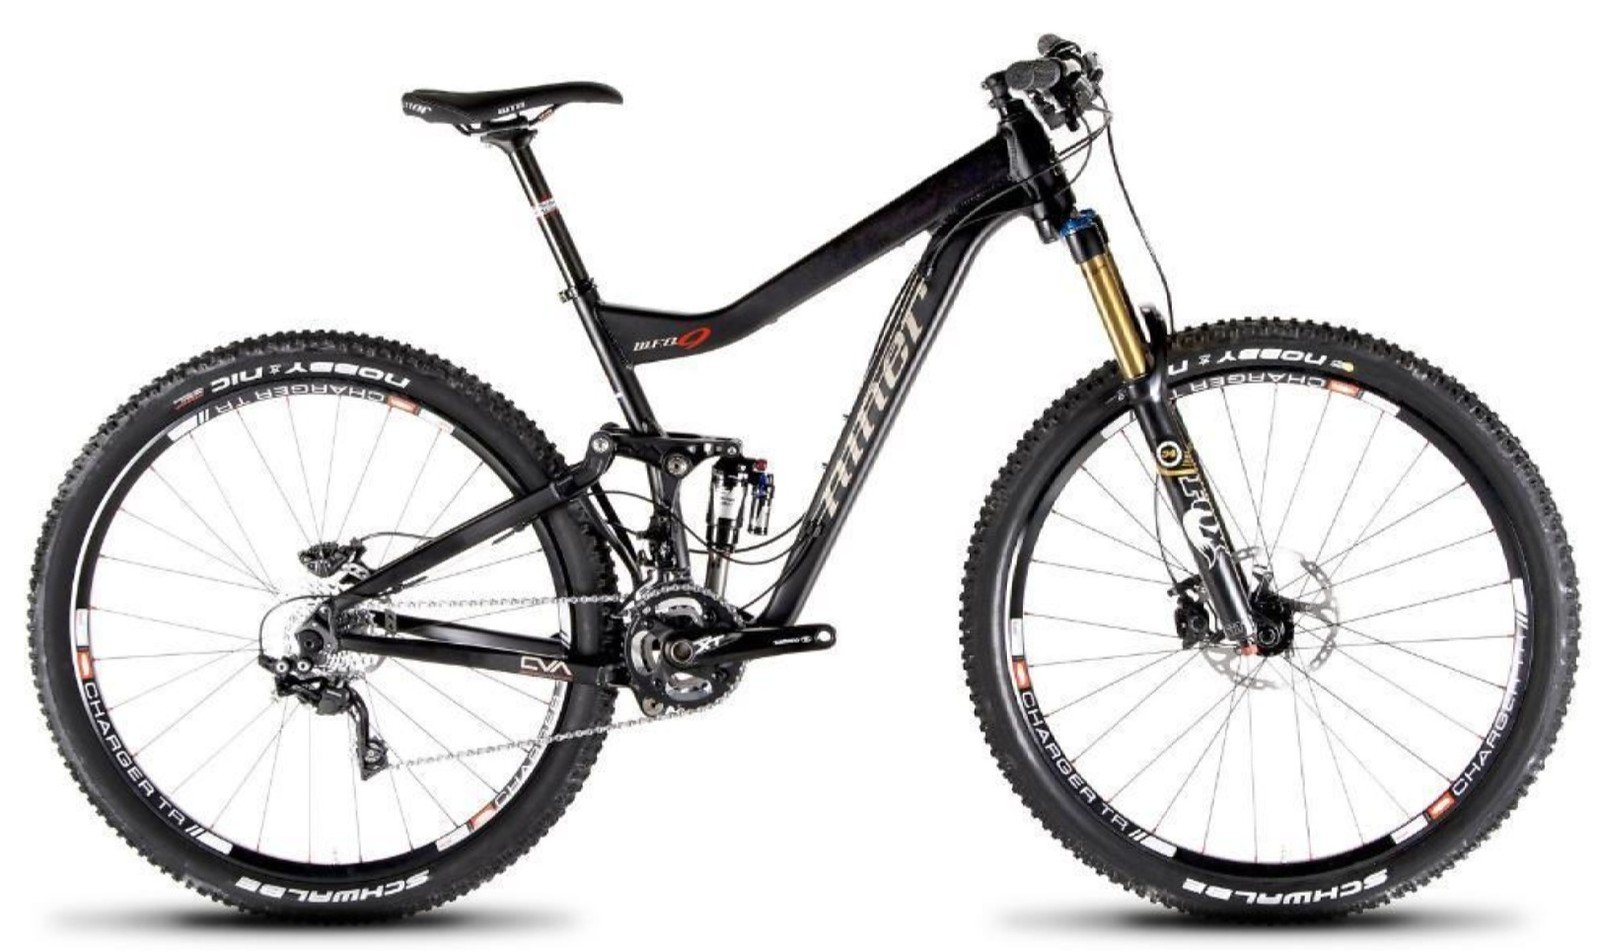 niner fully mountainbike rahmen 29 zoll w f o 9 gr e s. Black Bedroom Furniture Sets. Home Design Ideas